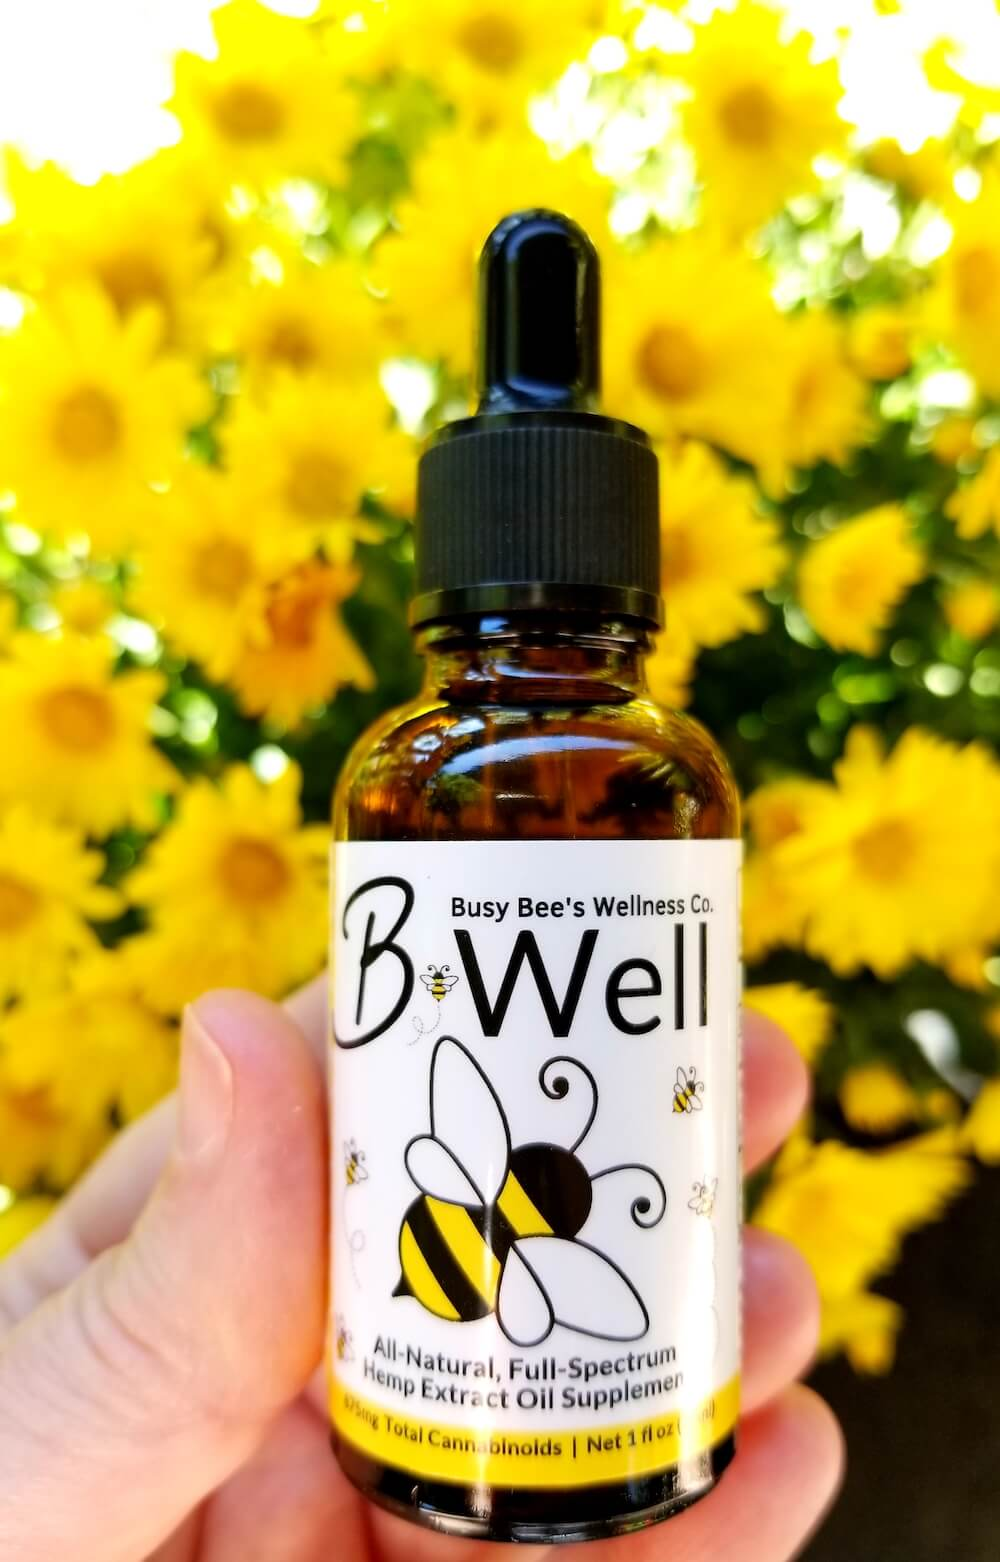 Busy Bee's B-Well is a powerful combo of CBD + CBDA oil made from organically grown Oregon full spectrum hemp